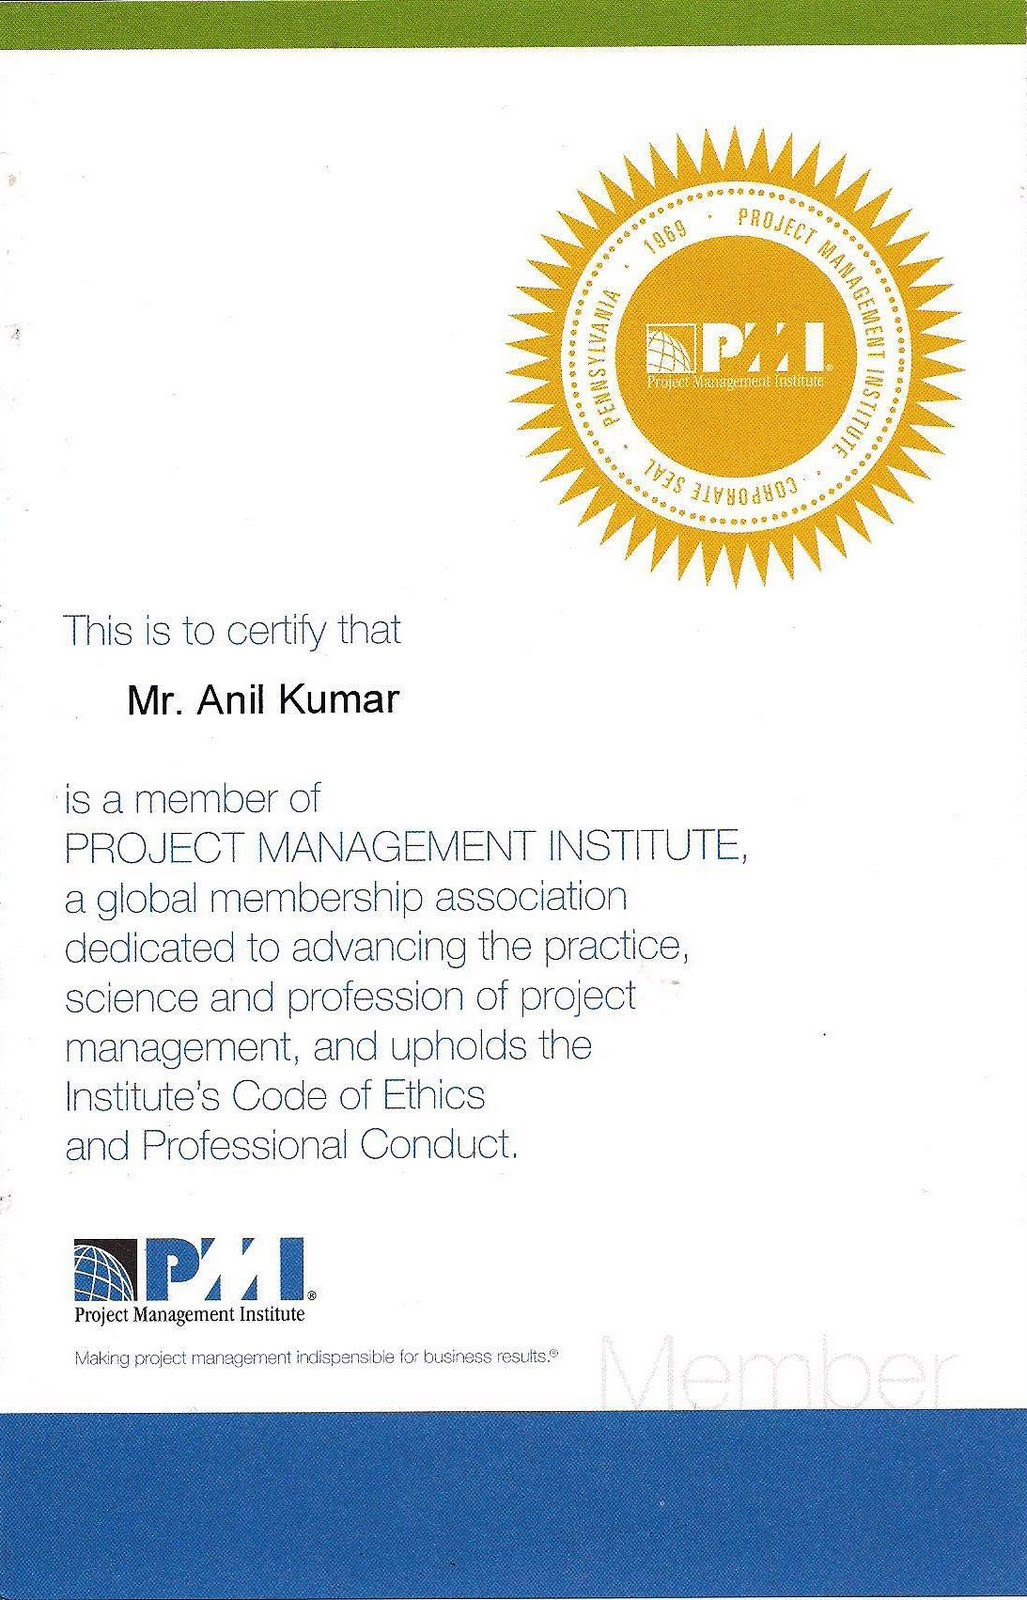 My World Pmi Project Management Institute Membership